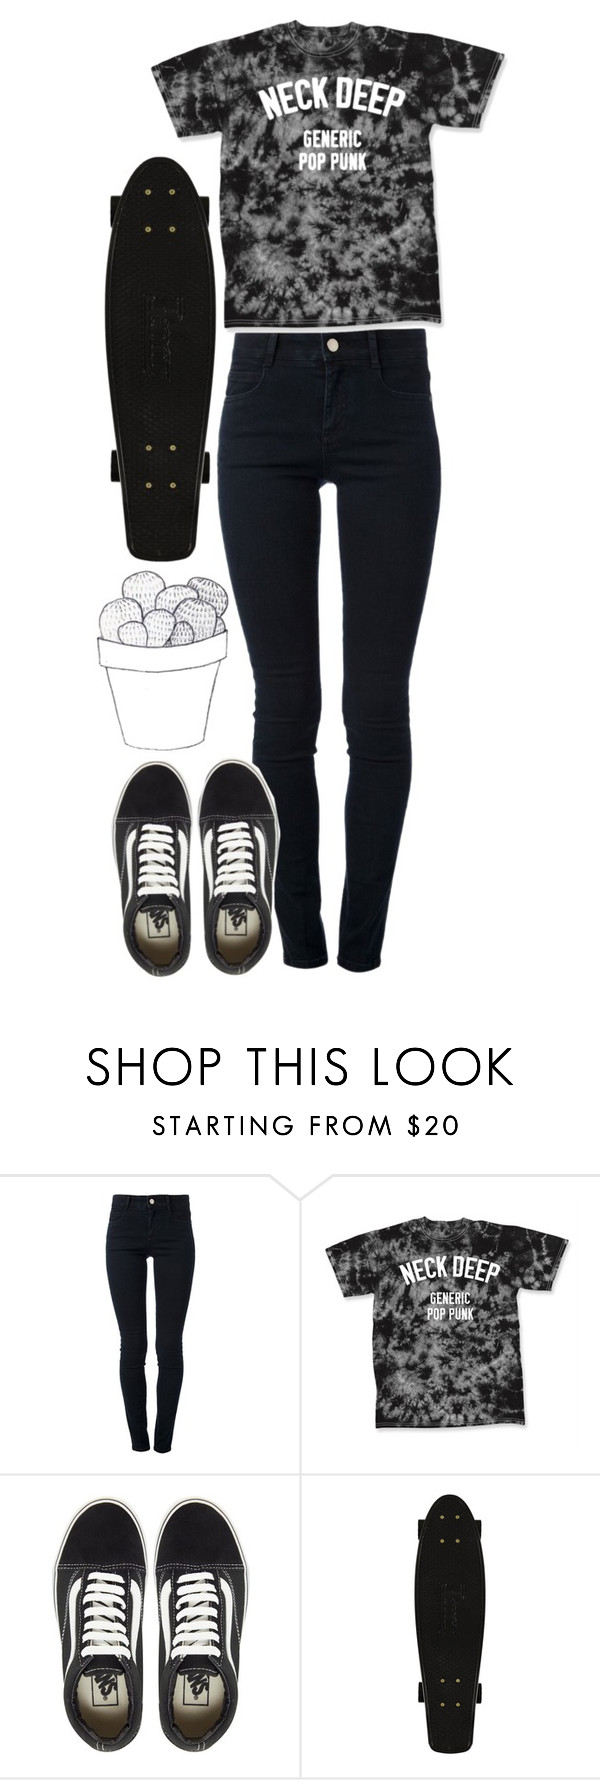 """{ you like me best when i'm off my rocker }"" by jlol ❤ liked on Polyvore featuring STELLA McCARTNEY and Vans"